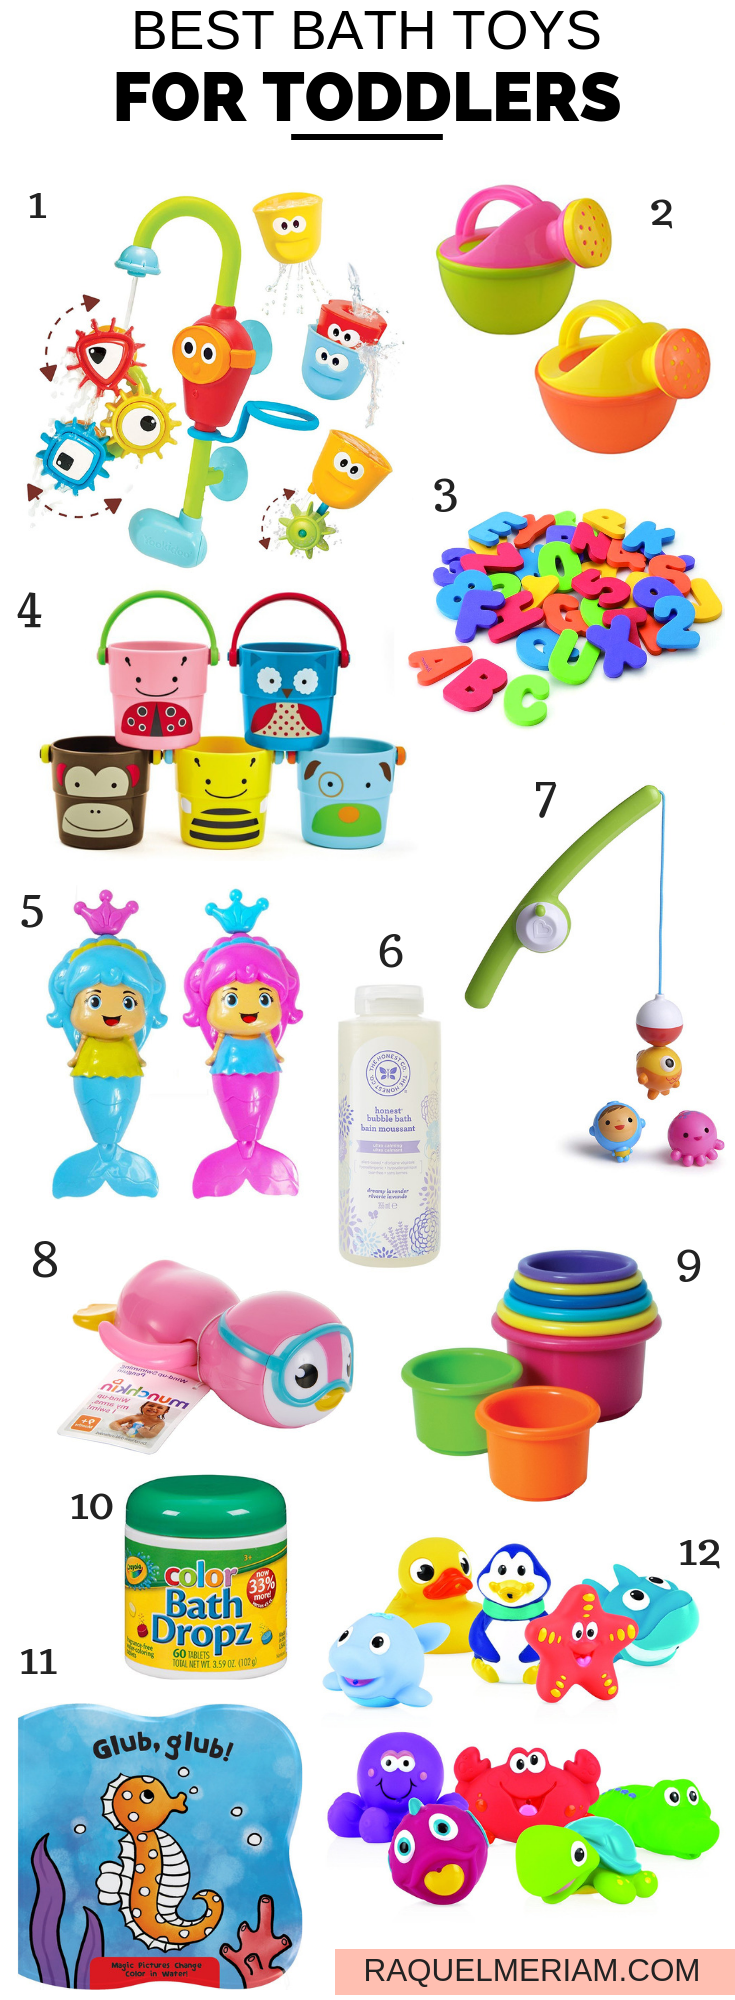 Here is a list of the Best Bath Toys for Toddlers and Kids that are affordable.